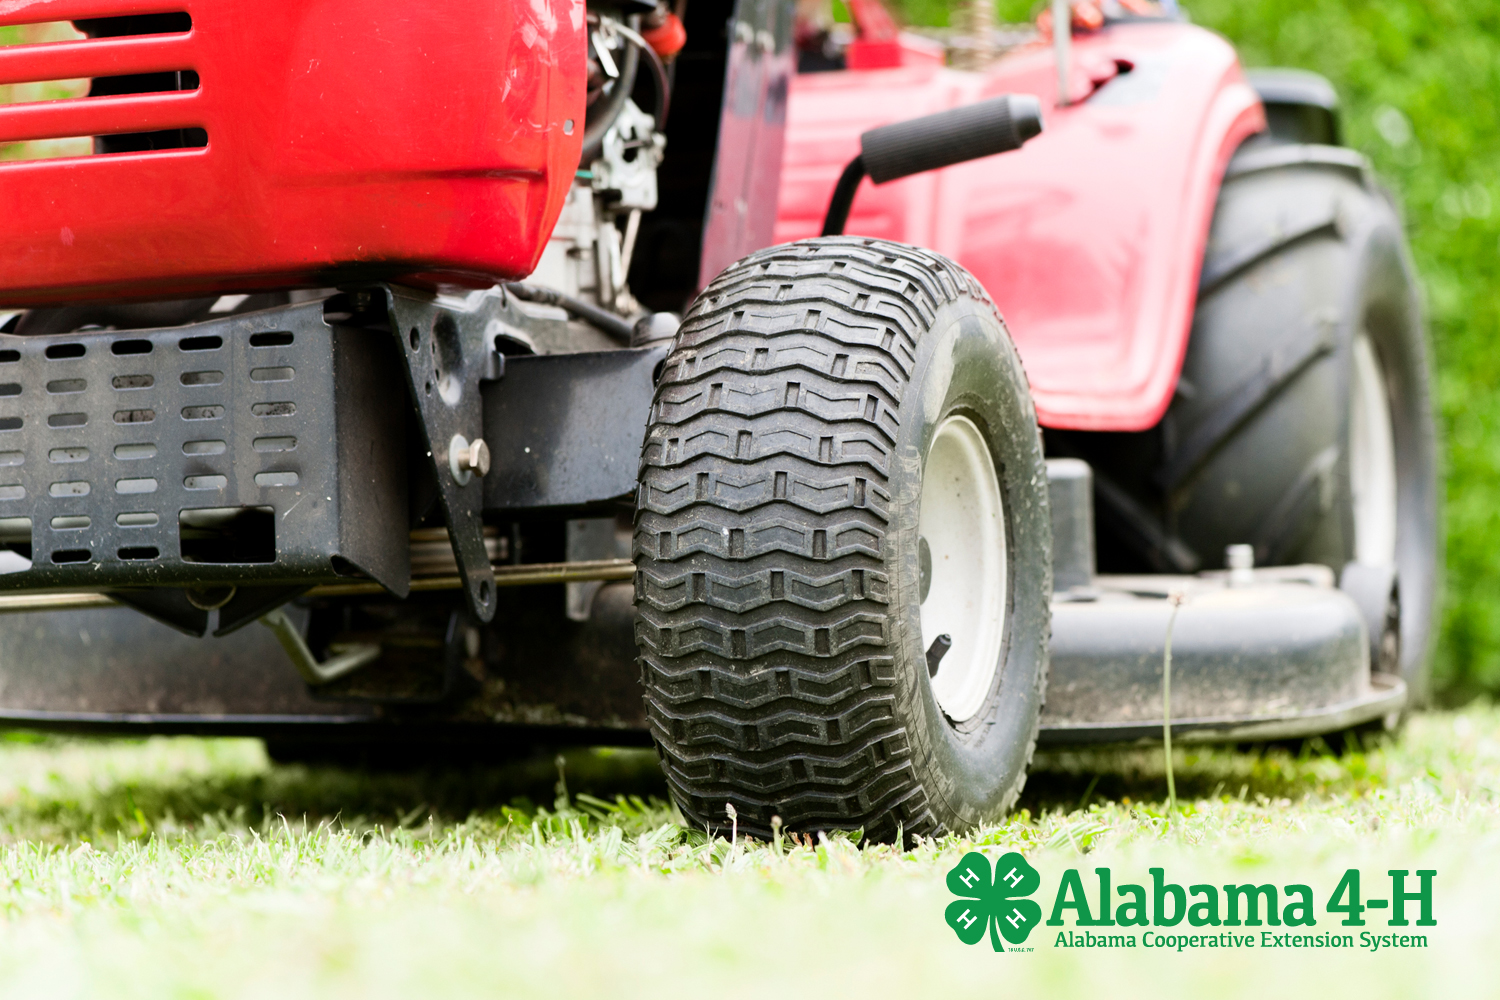 image of red lawn tractor part of the Alabama 4-H Lawn Tractor Project